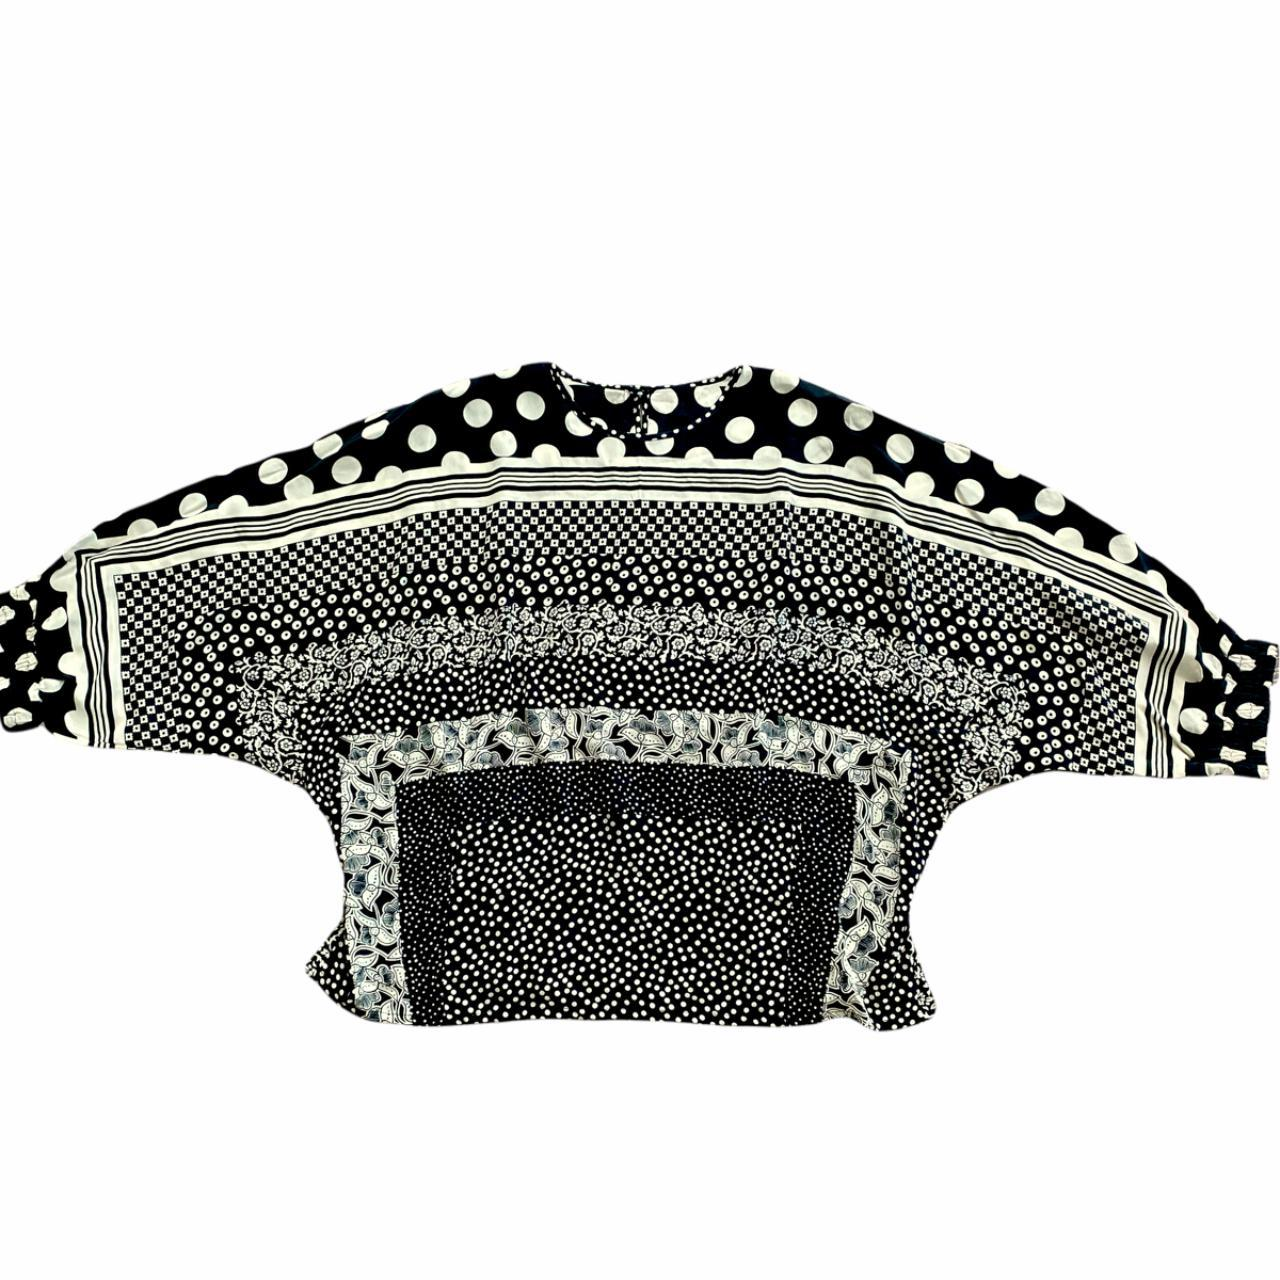 Product Image 1 - Vintage silk black and white